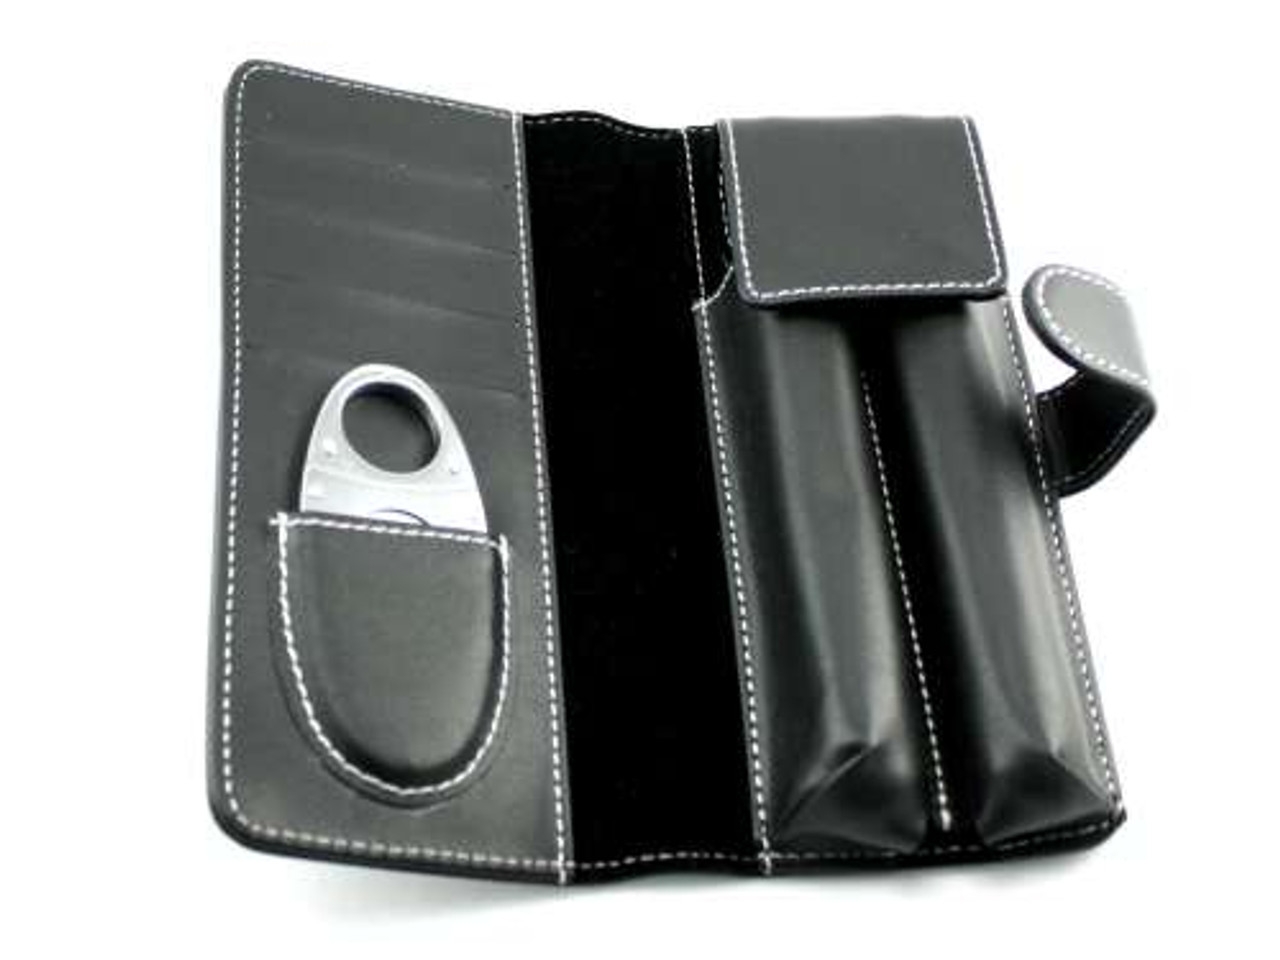 Deluxe Cigar Tube Gift Set with Flask and Cutter